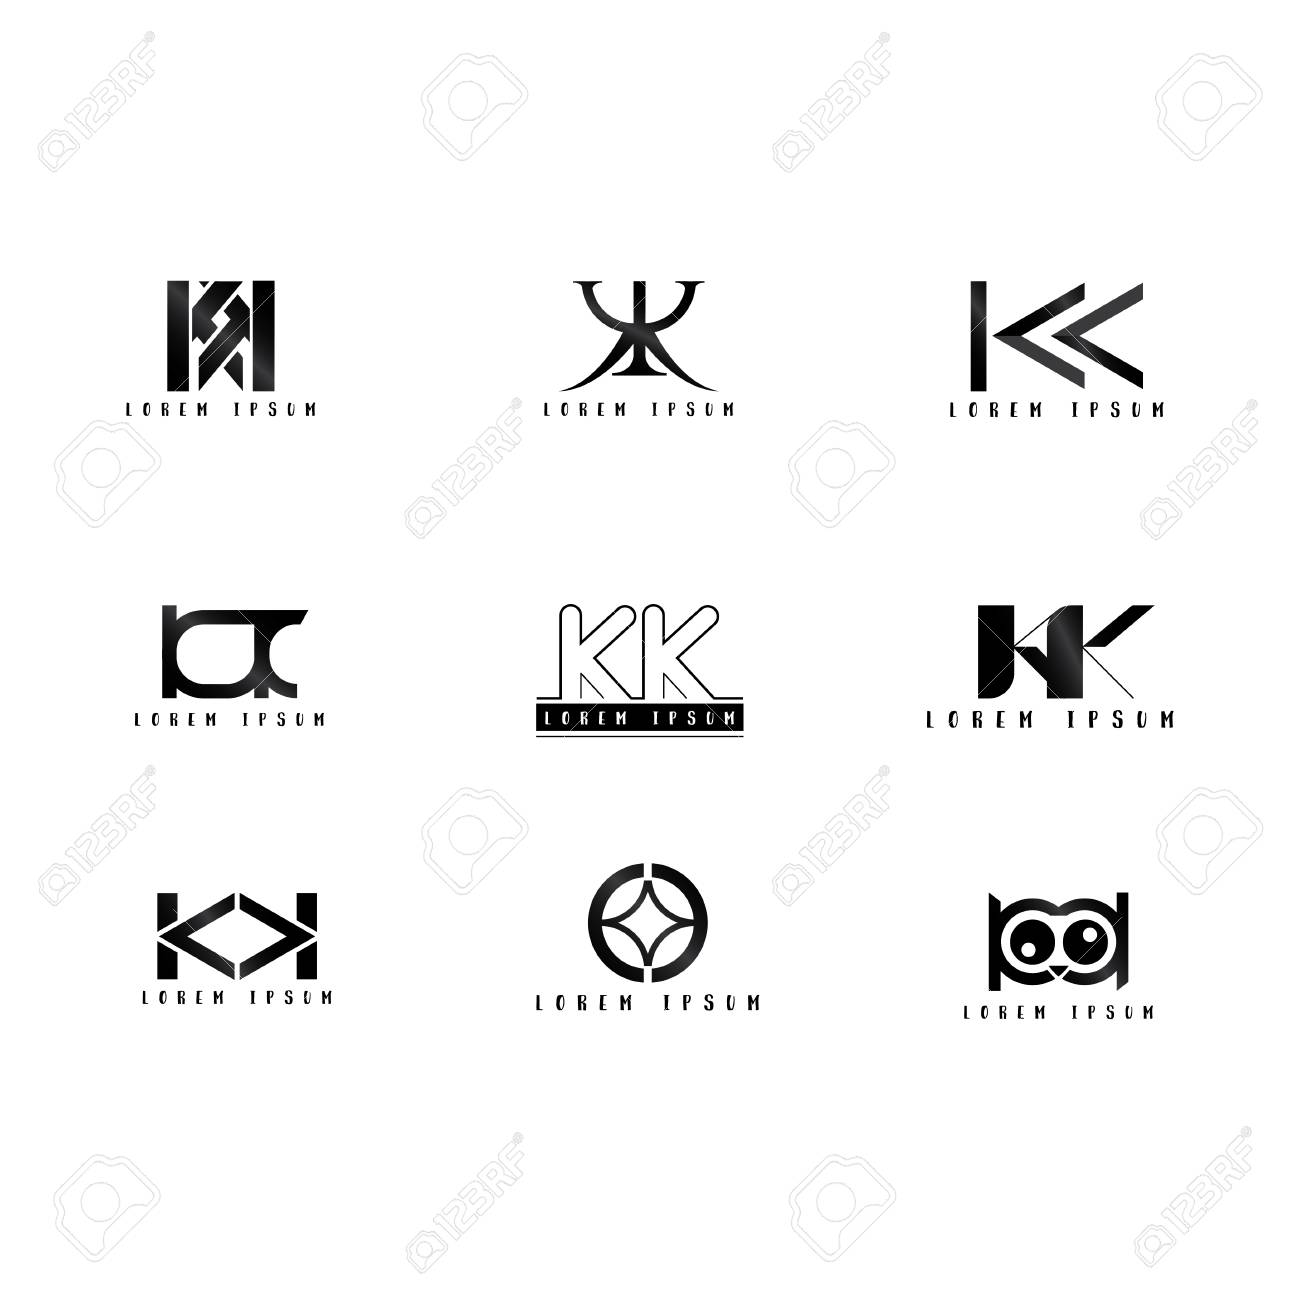 Kk Logo Vector Design Letter With Creative Font Set Royalty Free Cliparts Vectors And Stock Illustration Image 109589049